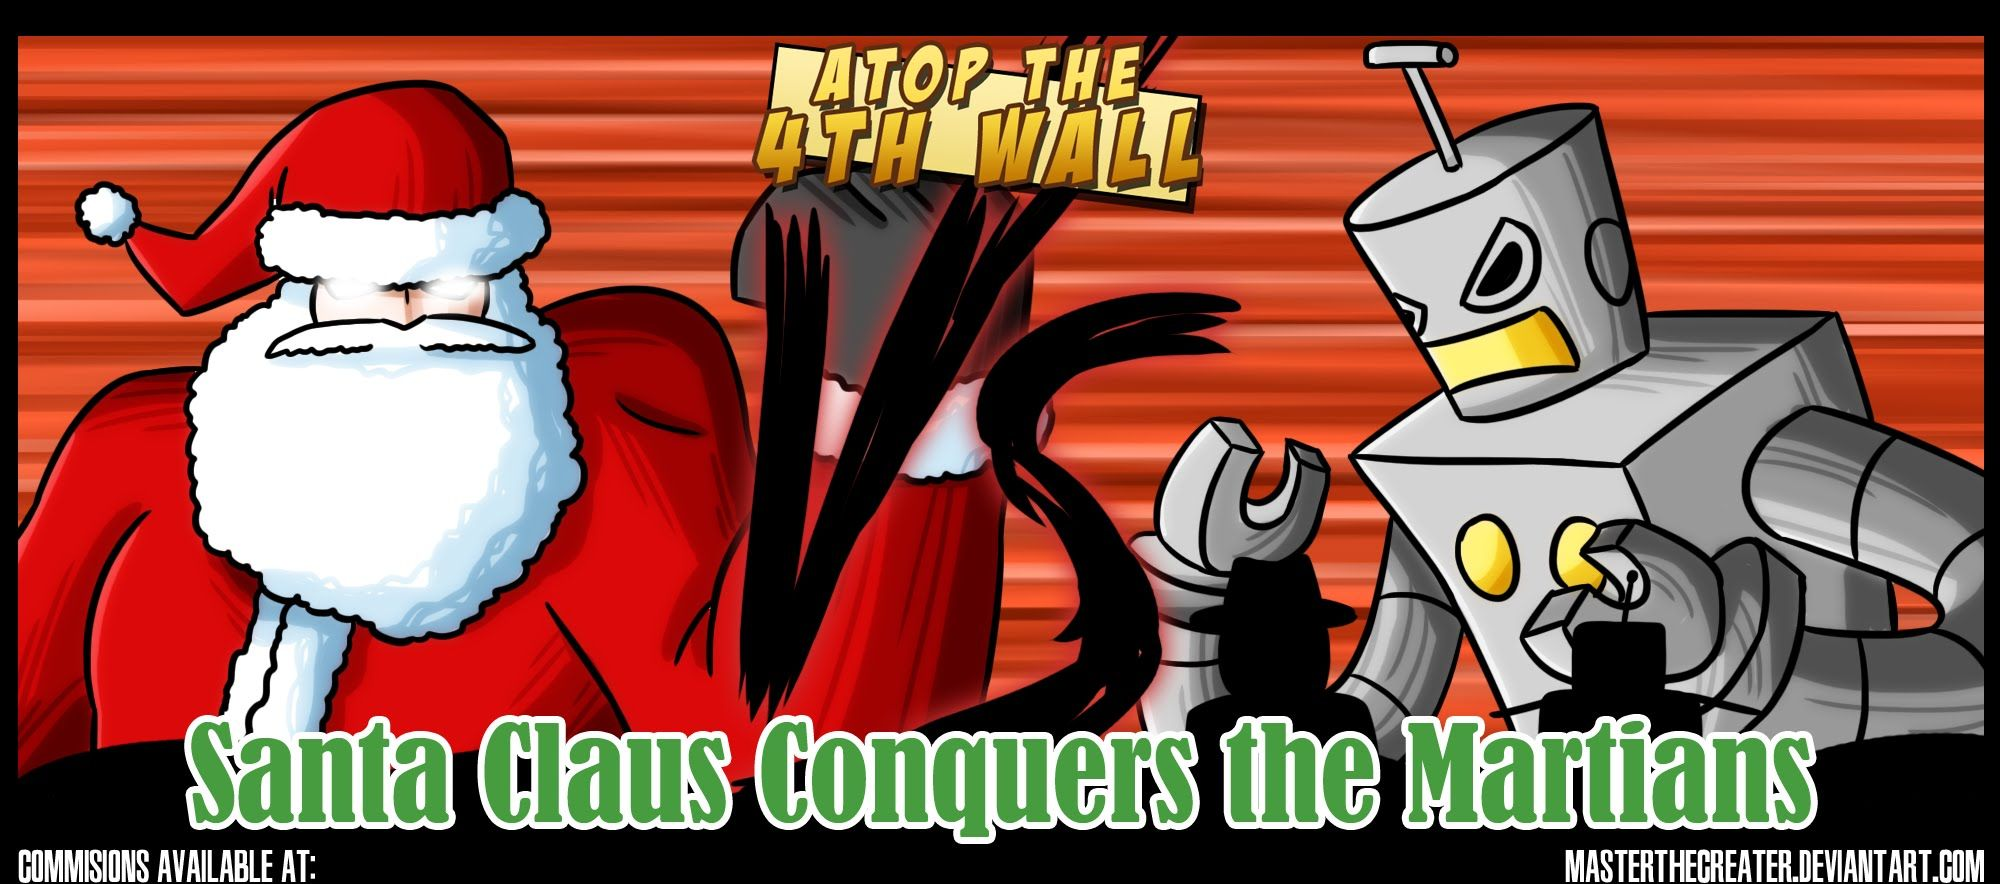 Santa Claus Conquers the Martians - Atop the Fourth Wall